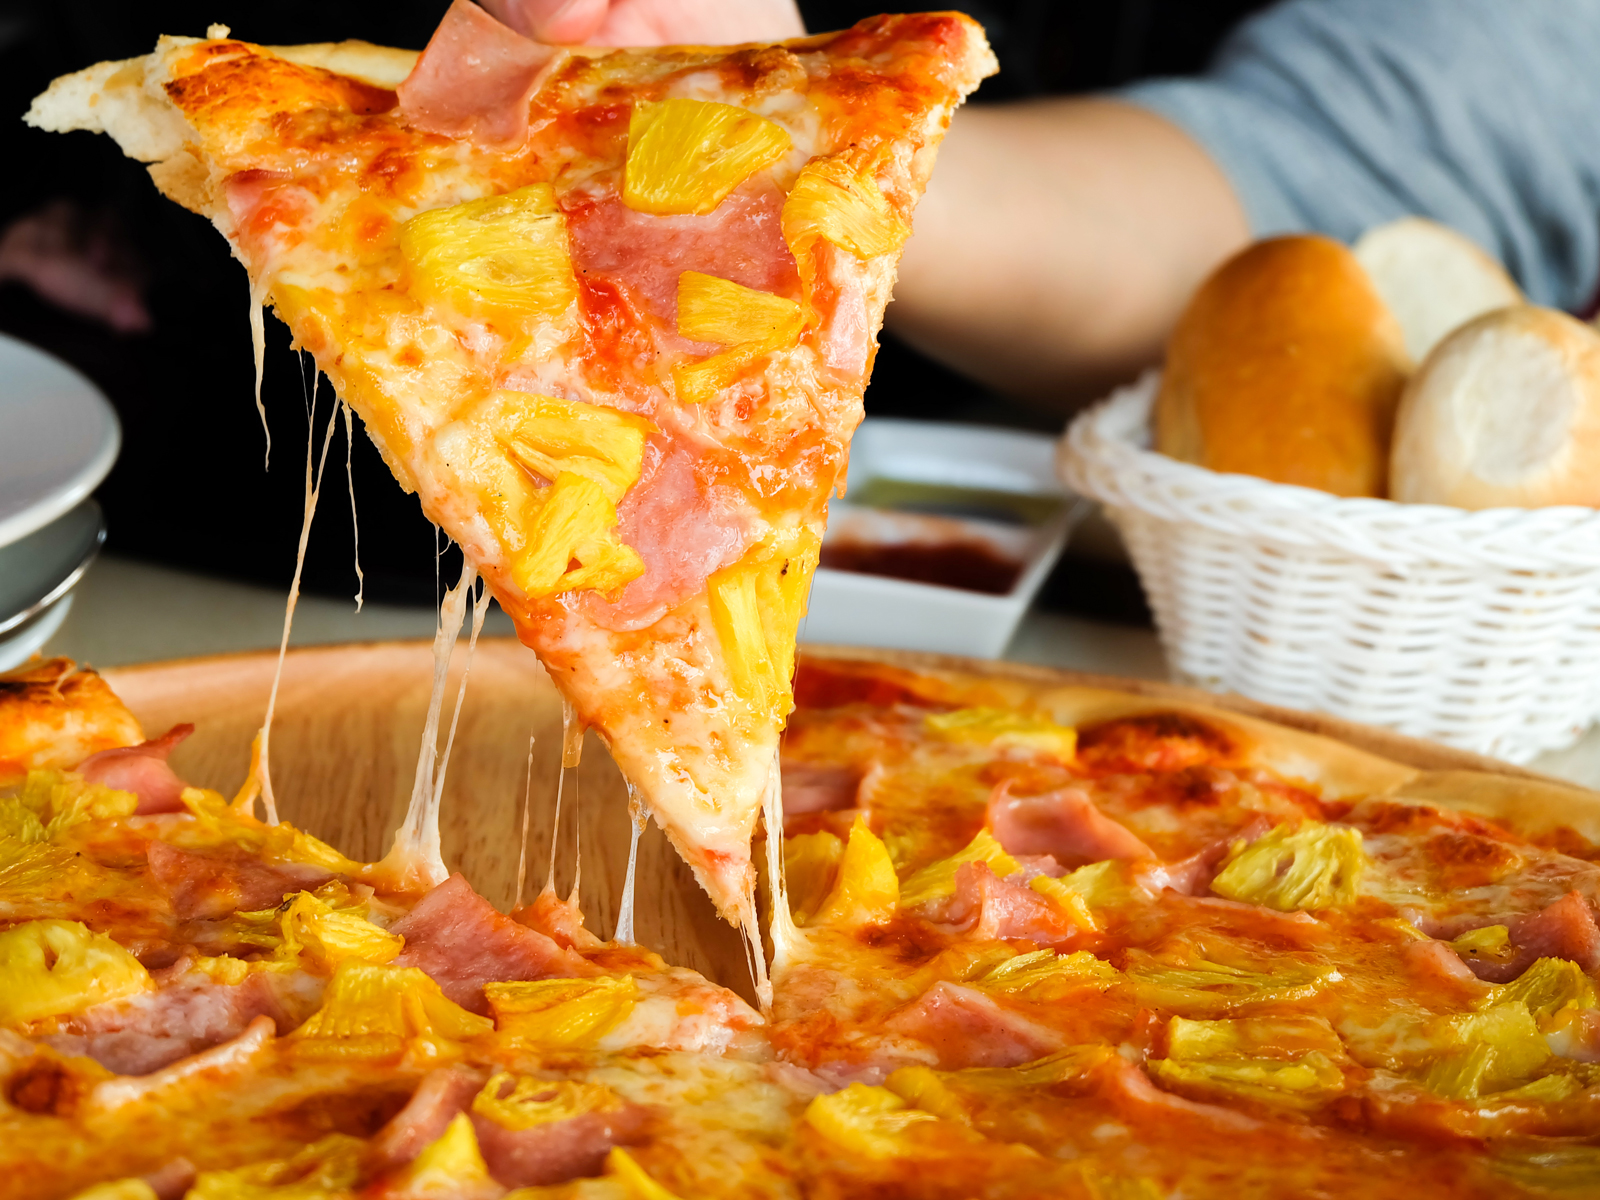 Over Half of Americans Would Rather Eat Cold Pizza for Breakfast, Says Survey